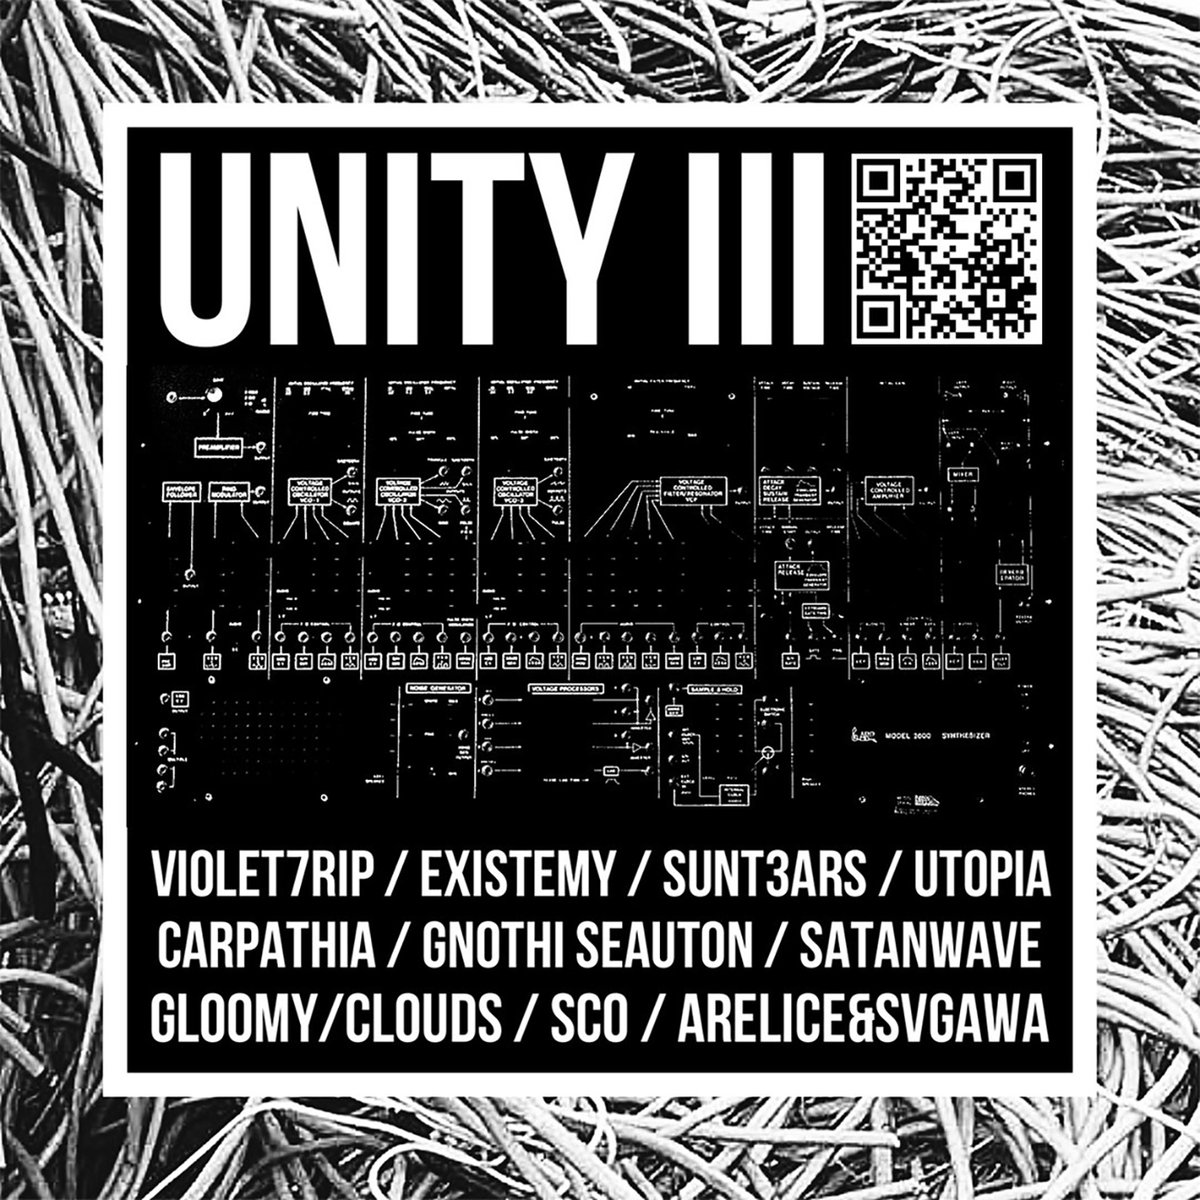 Violet7rip - Inside Out @ 'Various Artists - UNITY III' album (electronic, experimental)